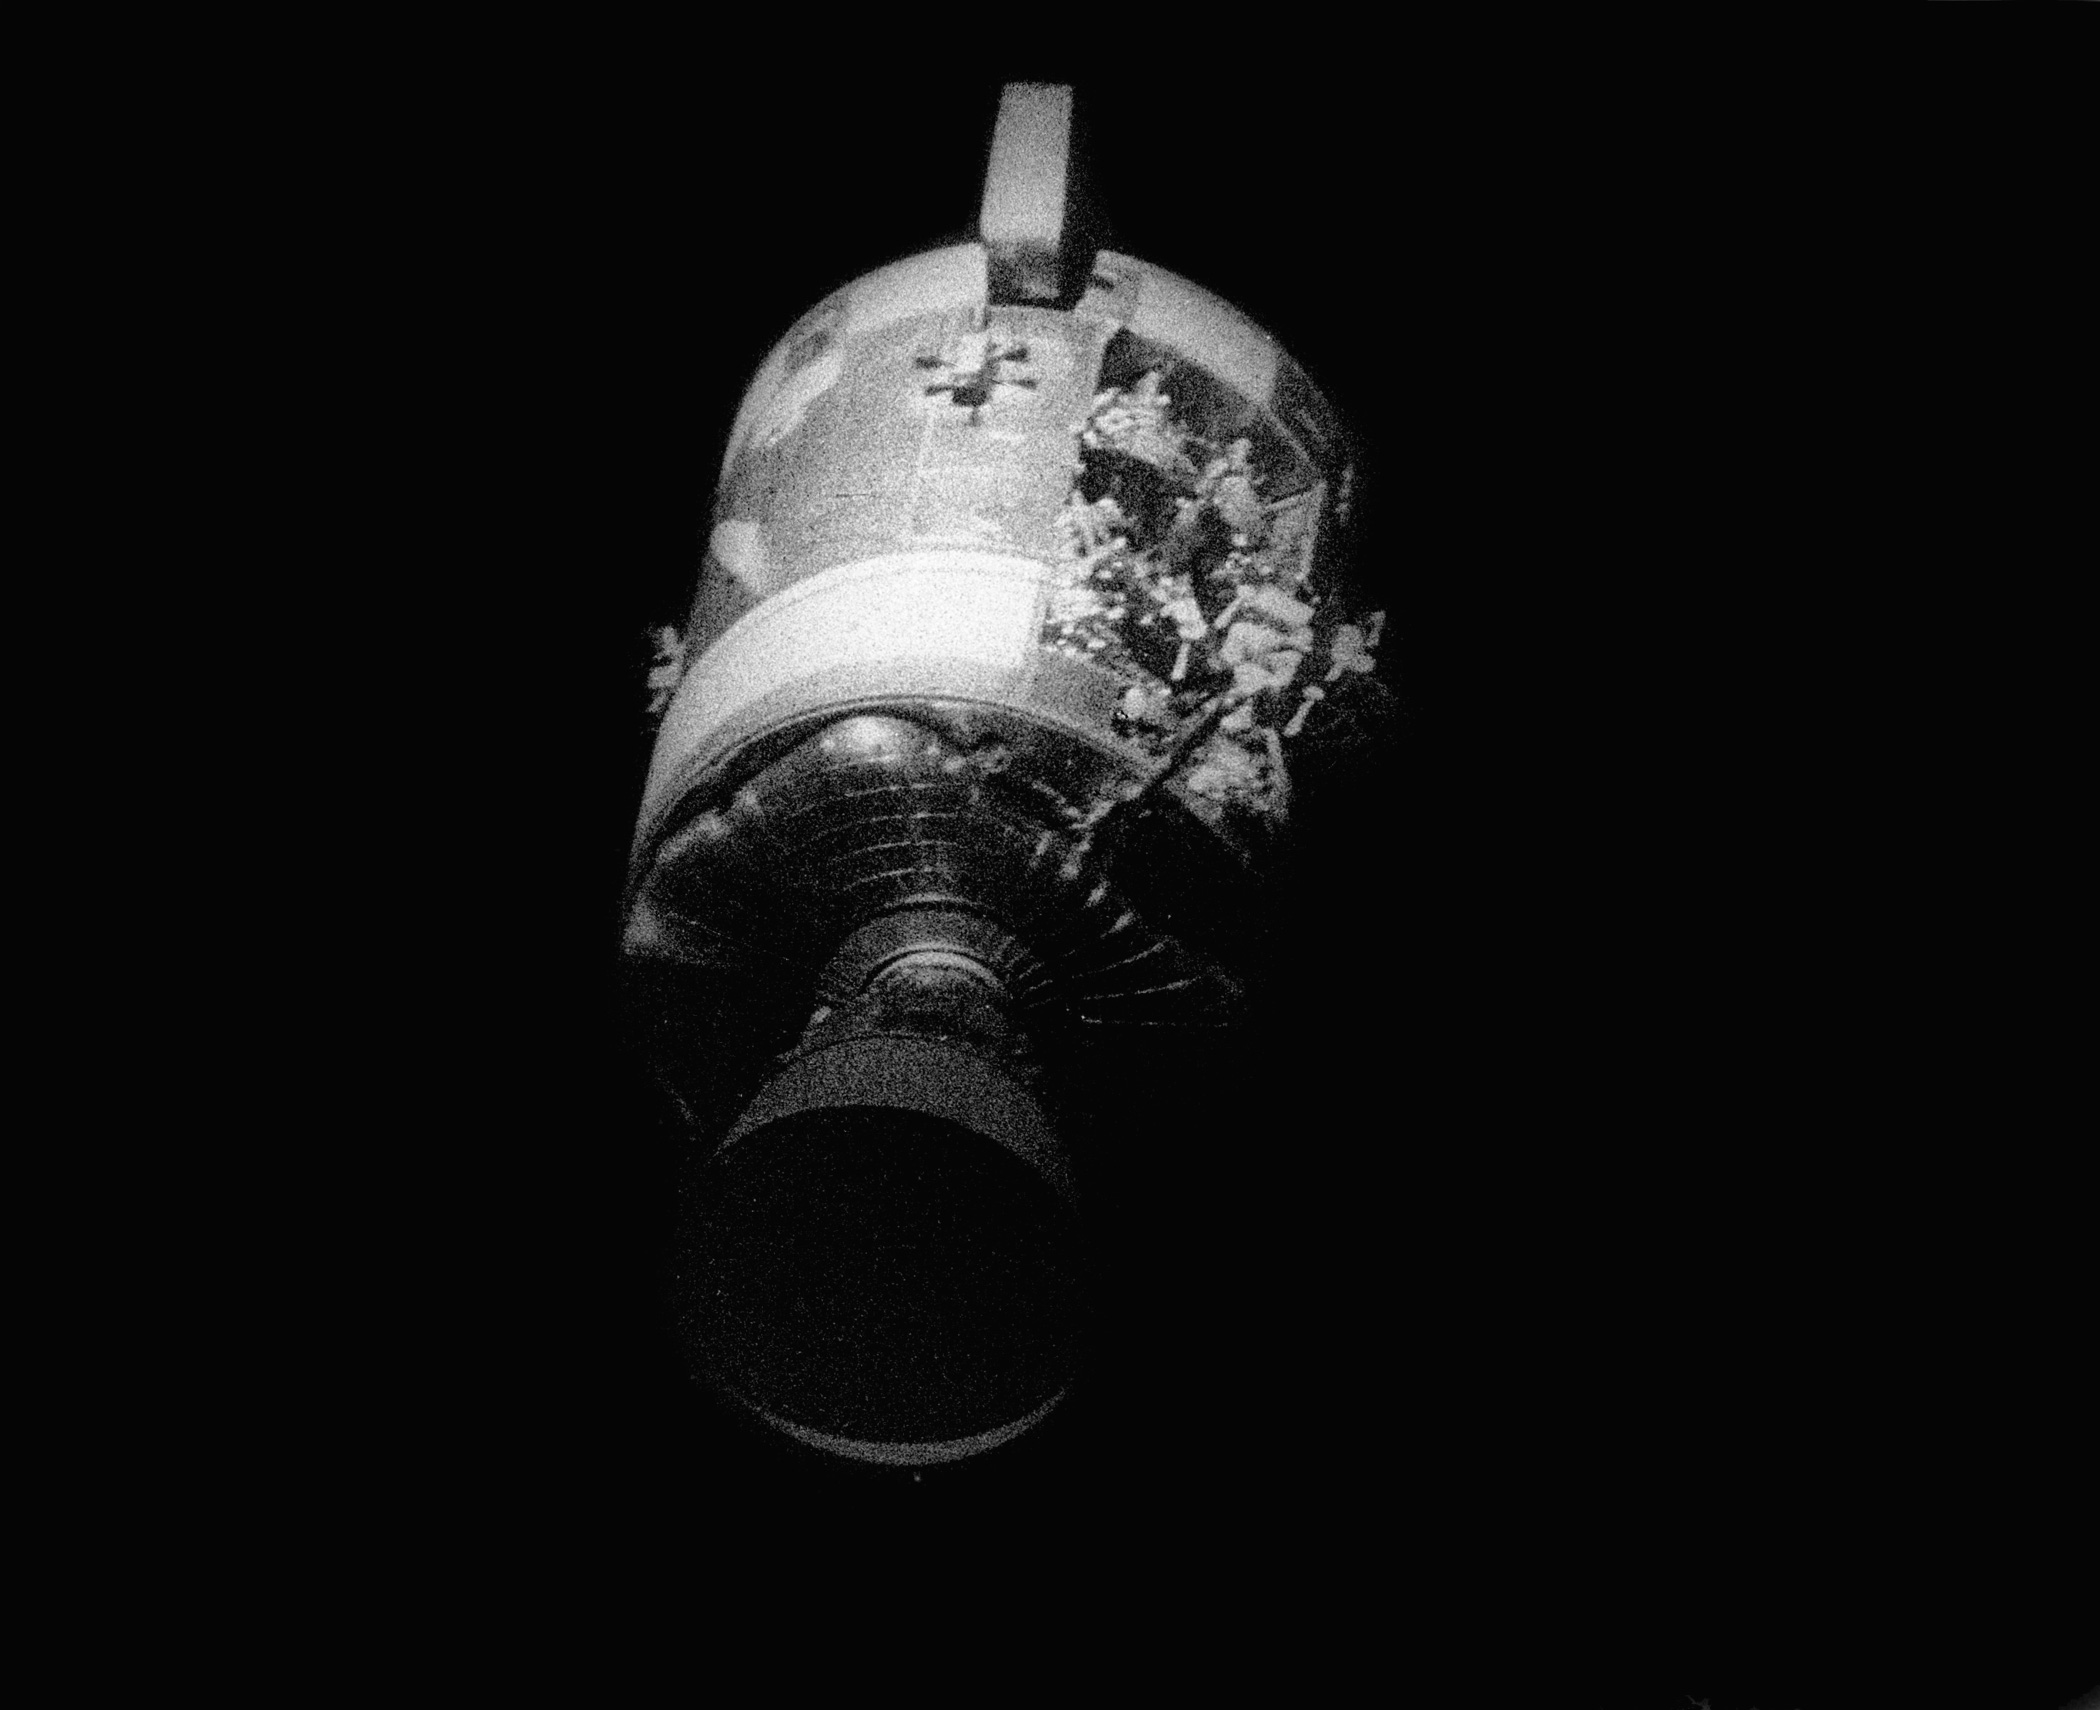 <b>Apollo 13's Command Module, 1970</b>; A NASA picture taken on April 17, 1970 shows Apollo 13 damaged Service Module Odyssey, as photographed from the Command Module after being jettisoned.